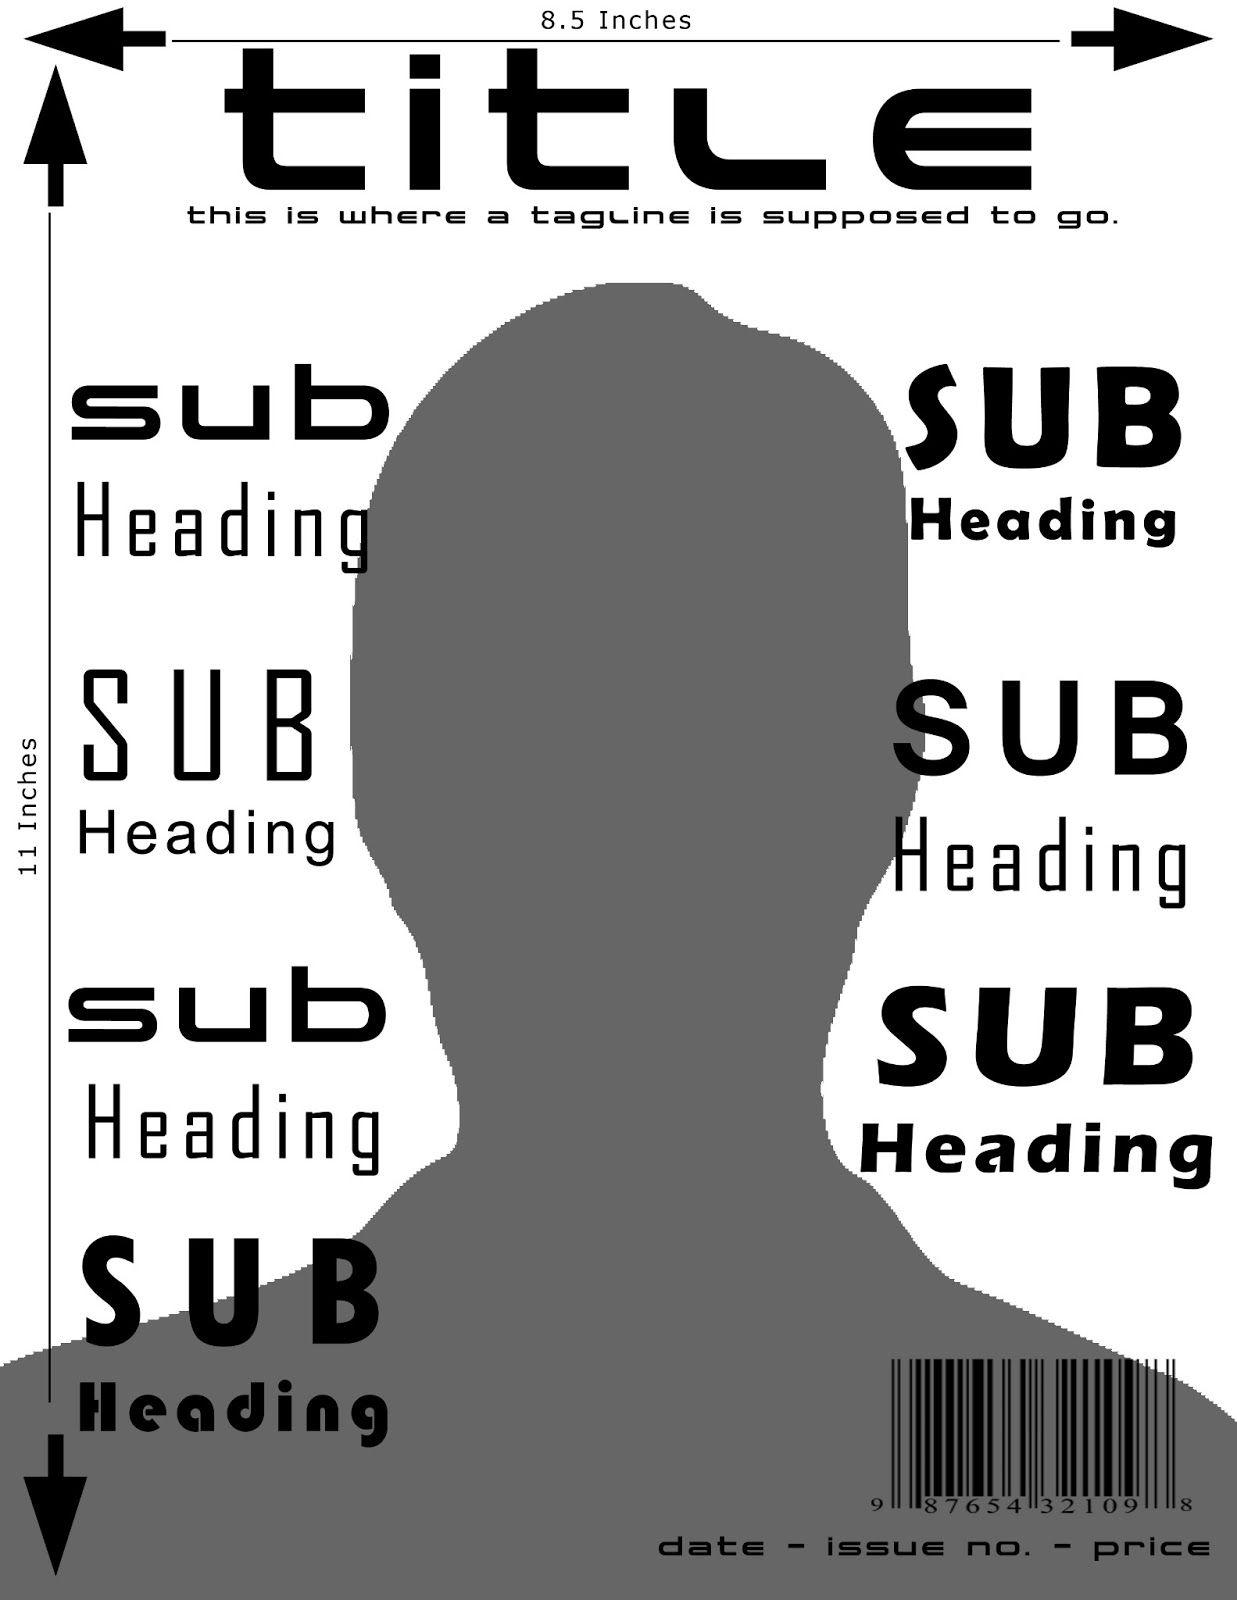 Magazine Covers Template. magazine cover templates printable ...